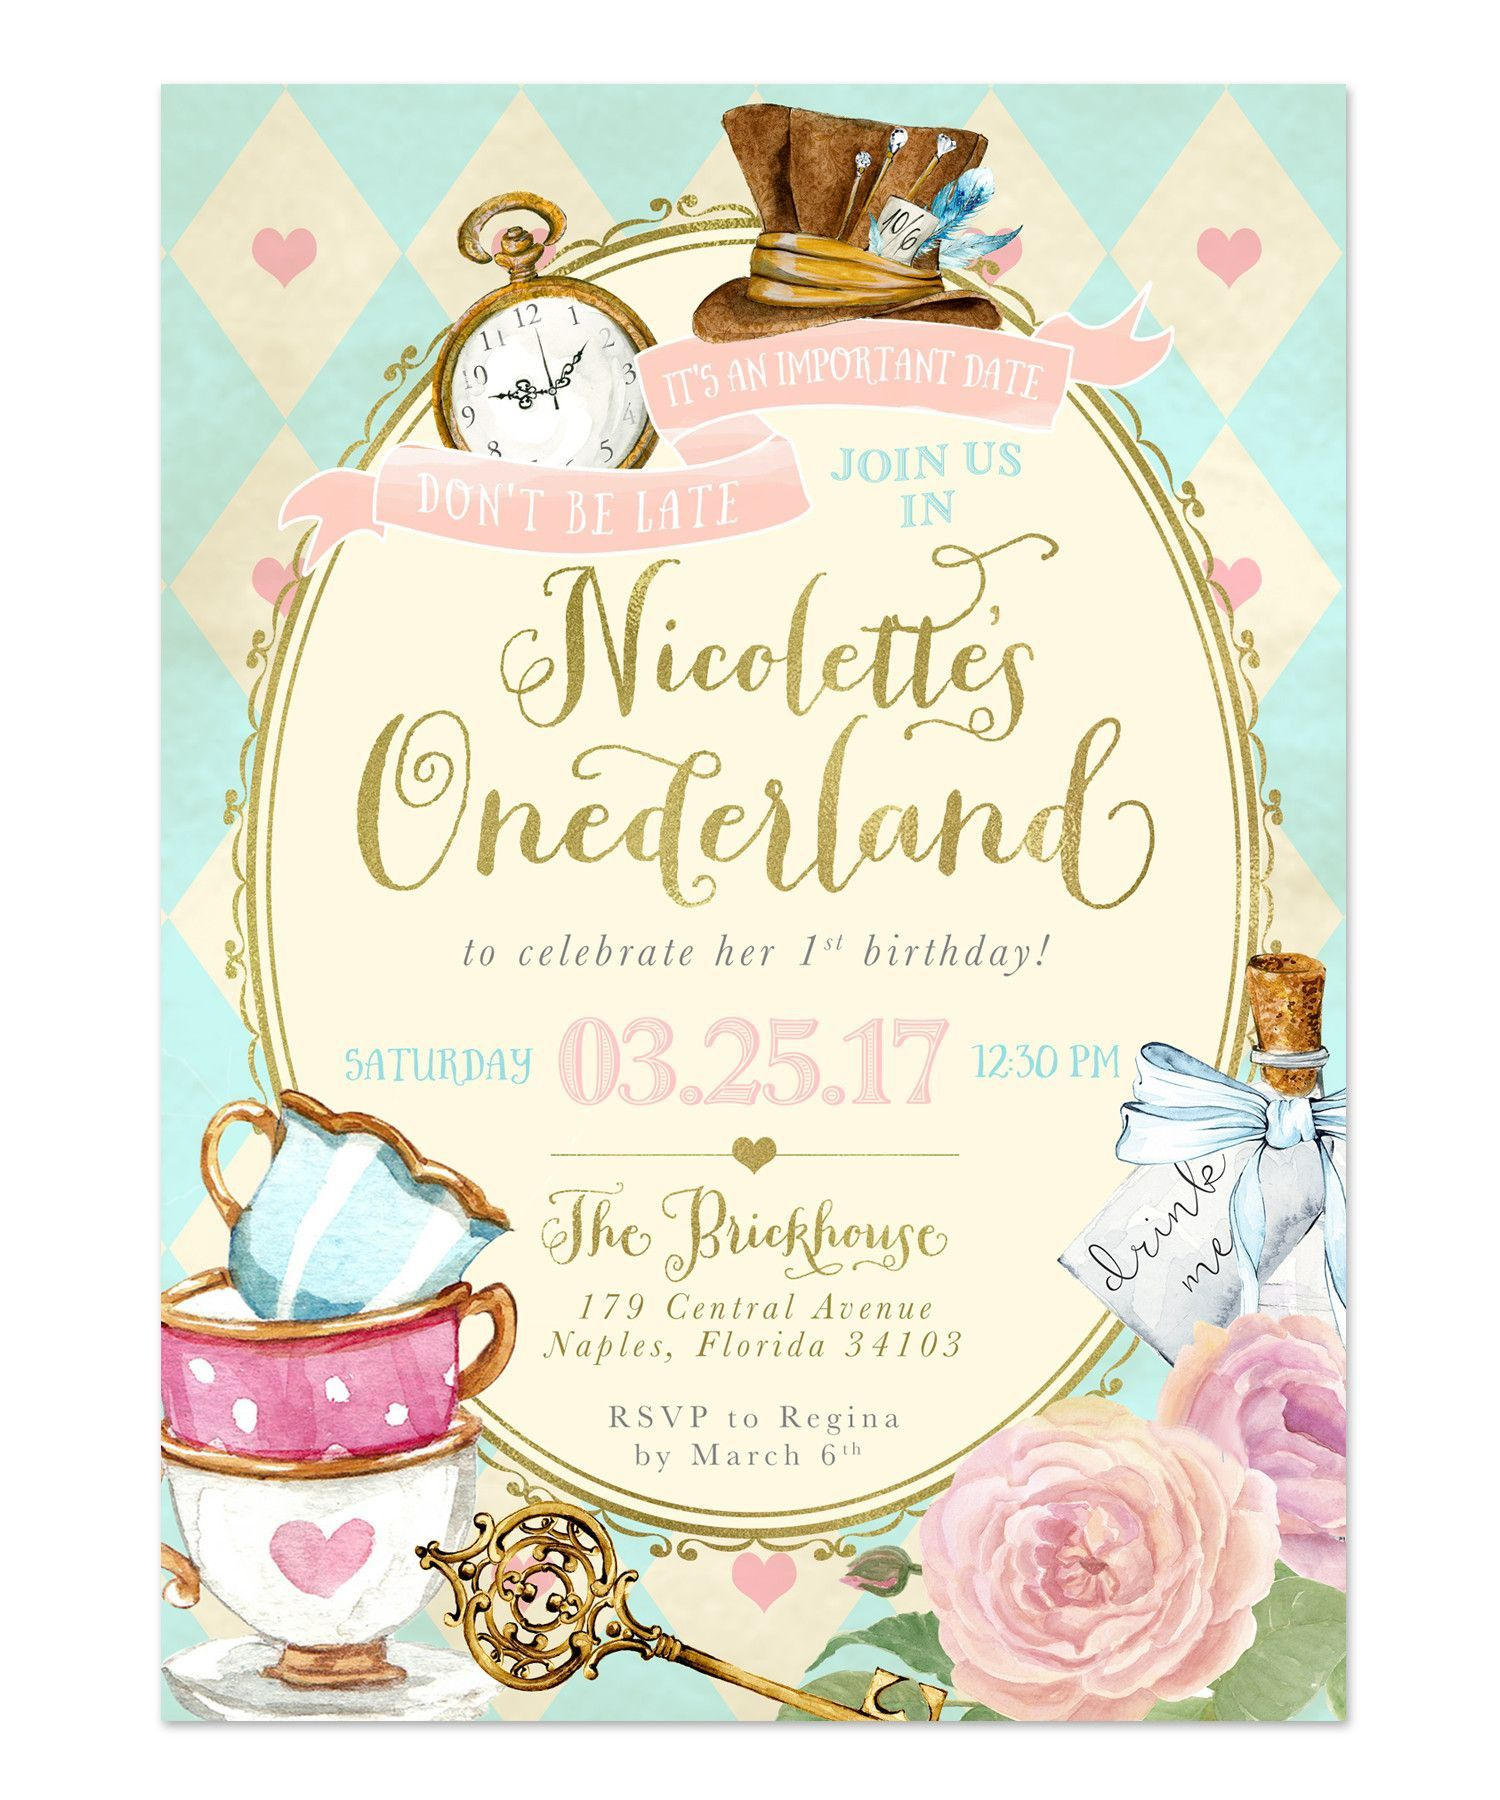 009 Awful Alice In Wonderland Birthday Party Invitation Printable Free Image Full